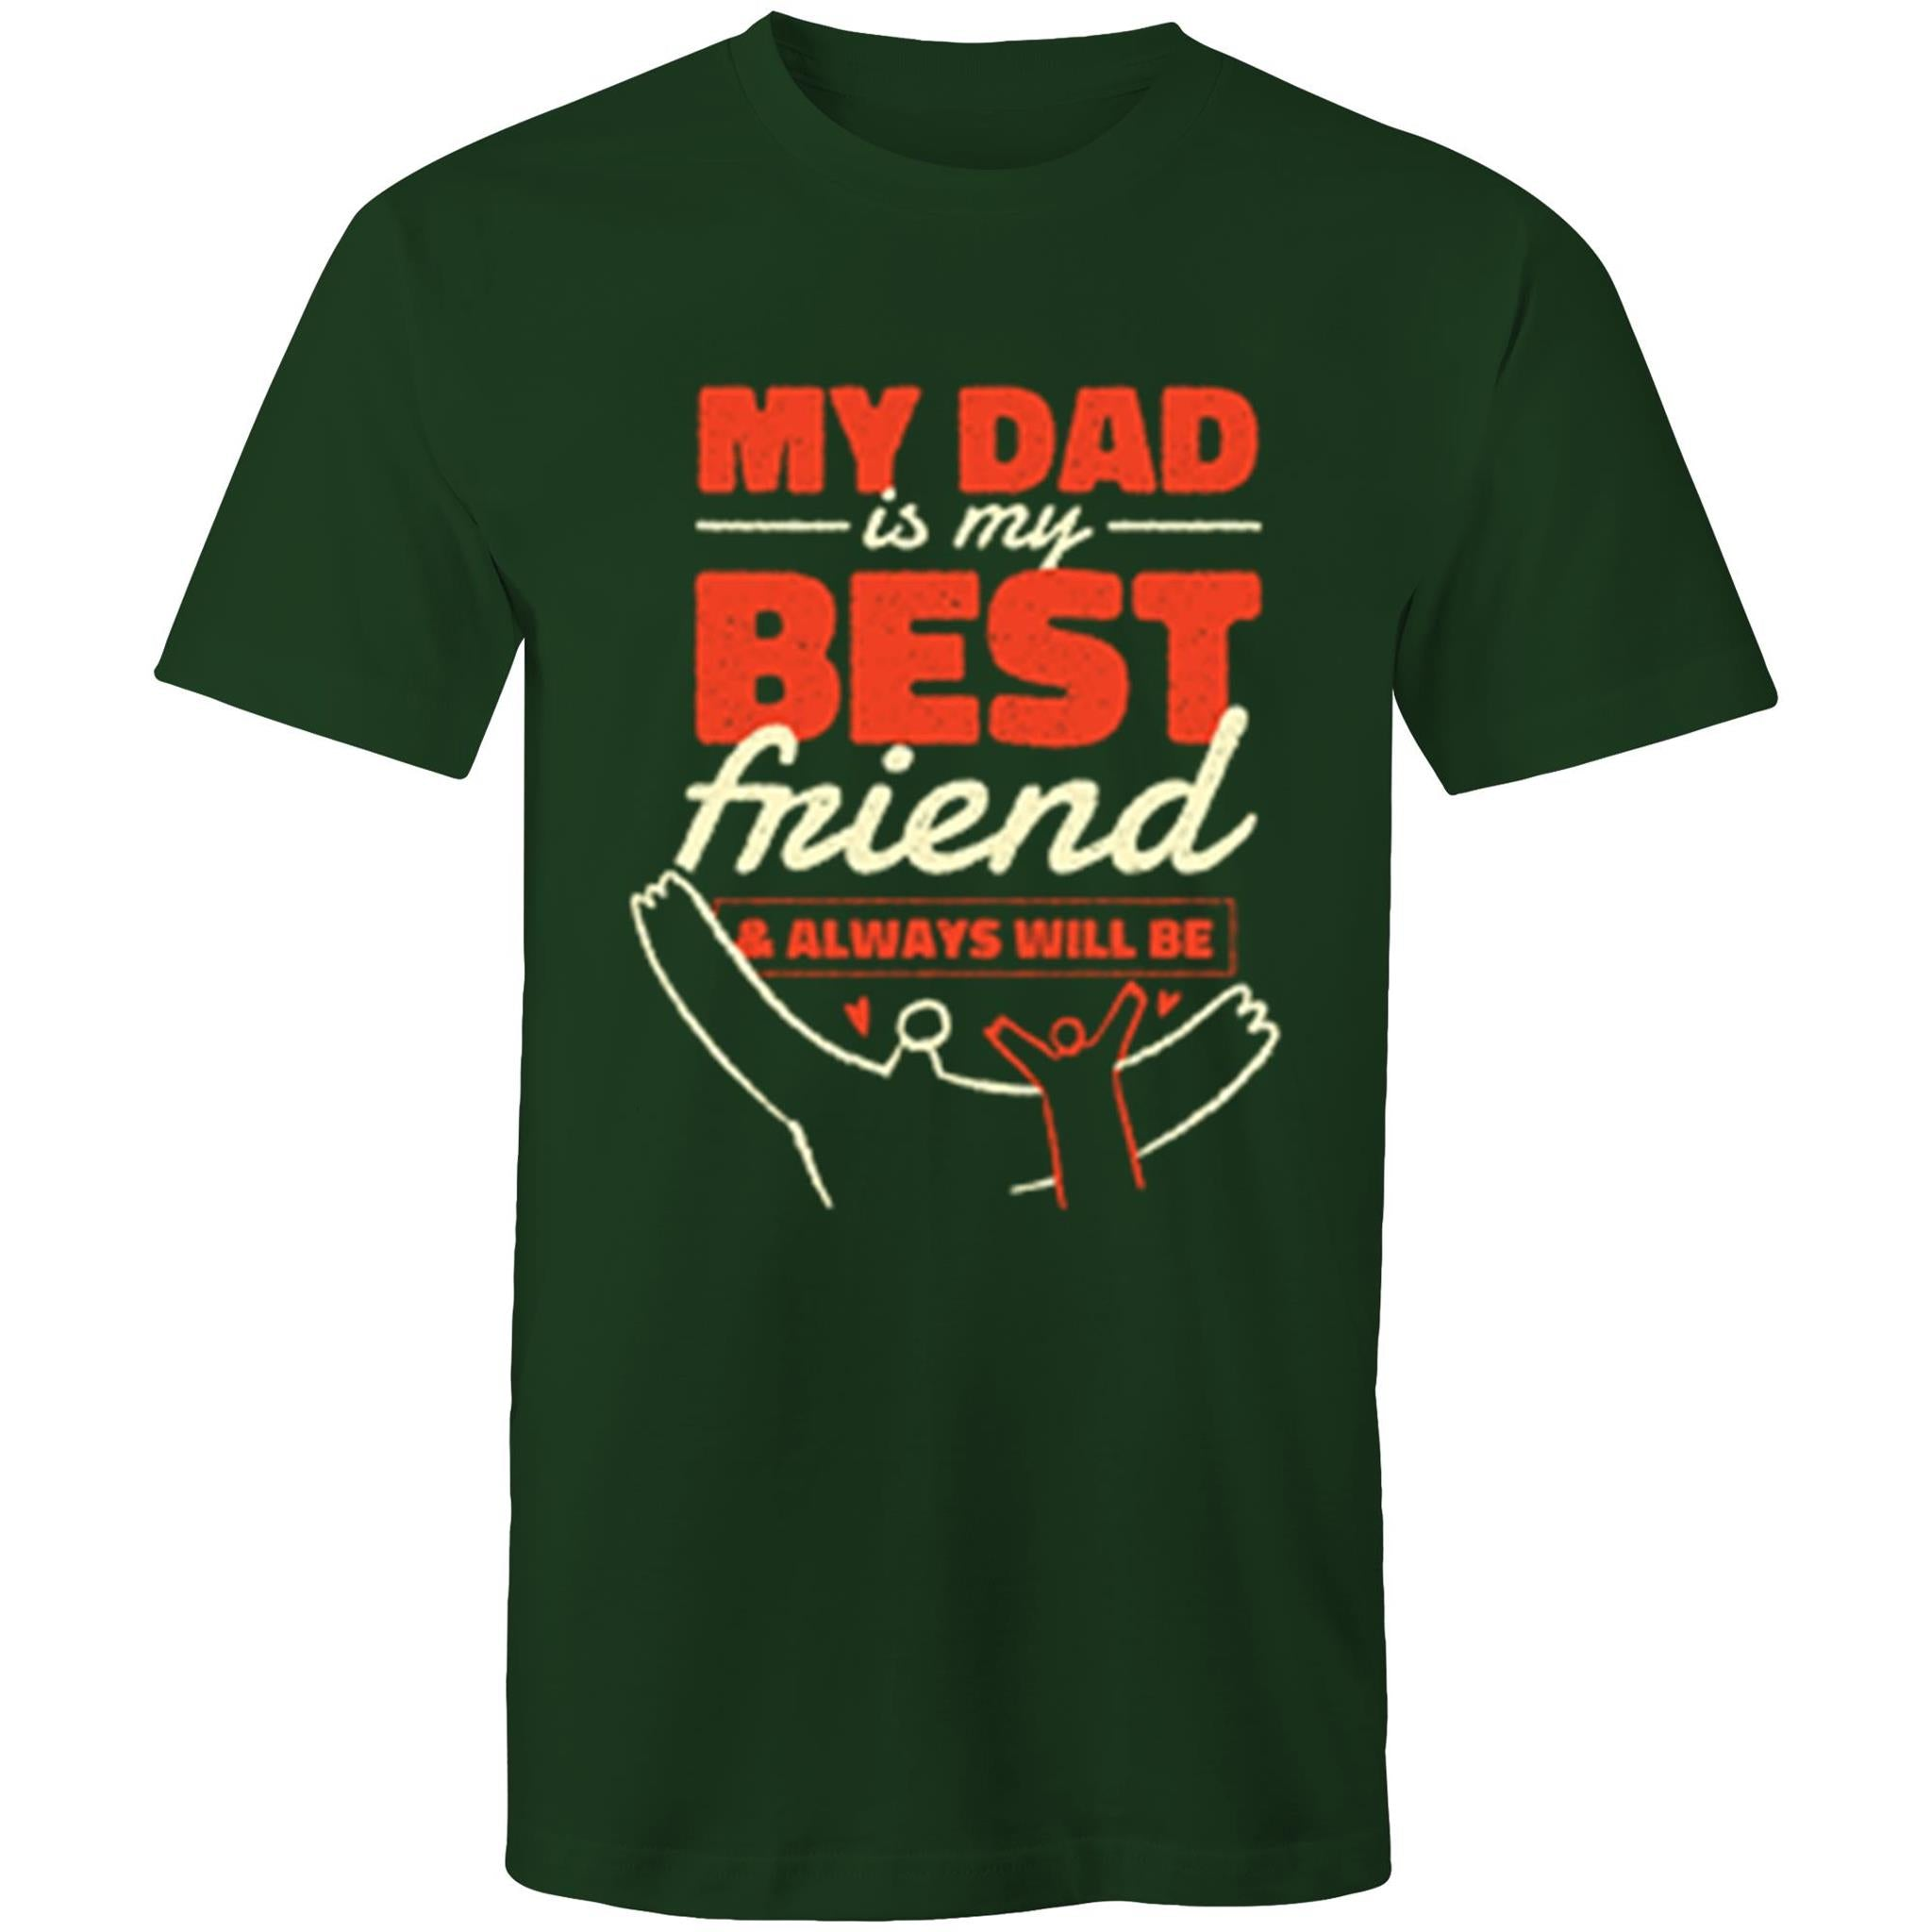 My dad is my best friend (Mens S - 5XL)